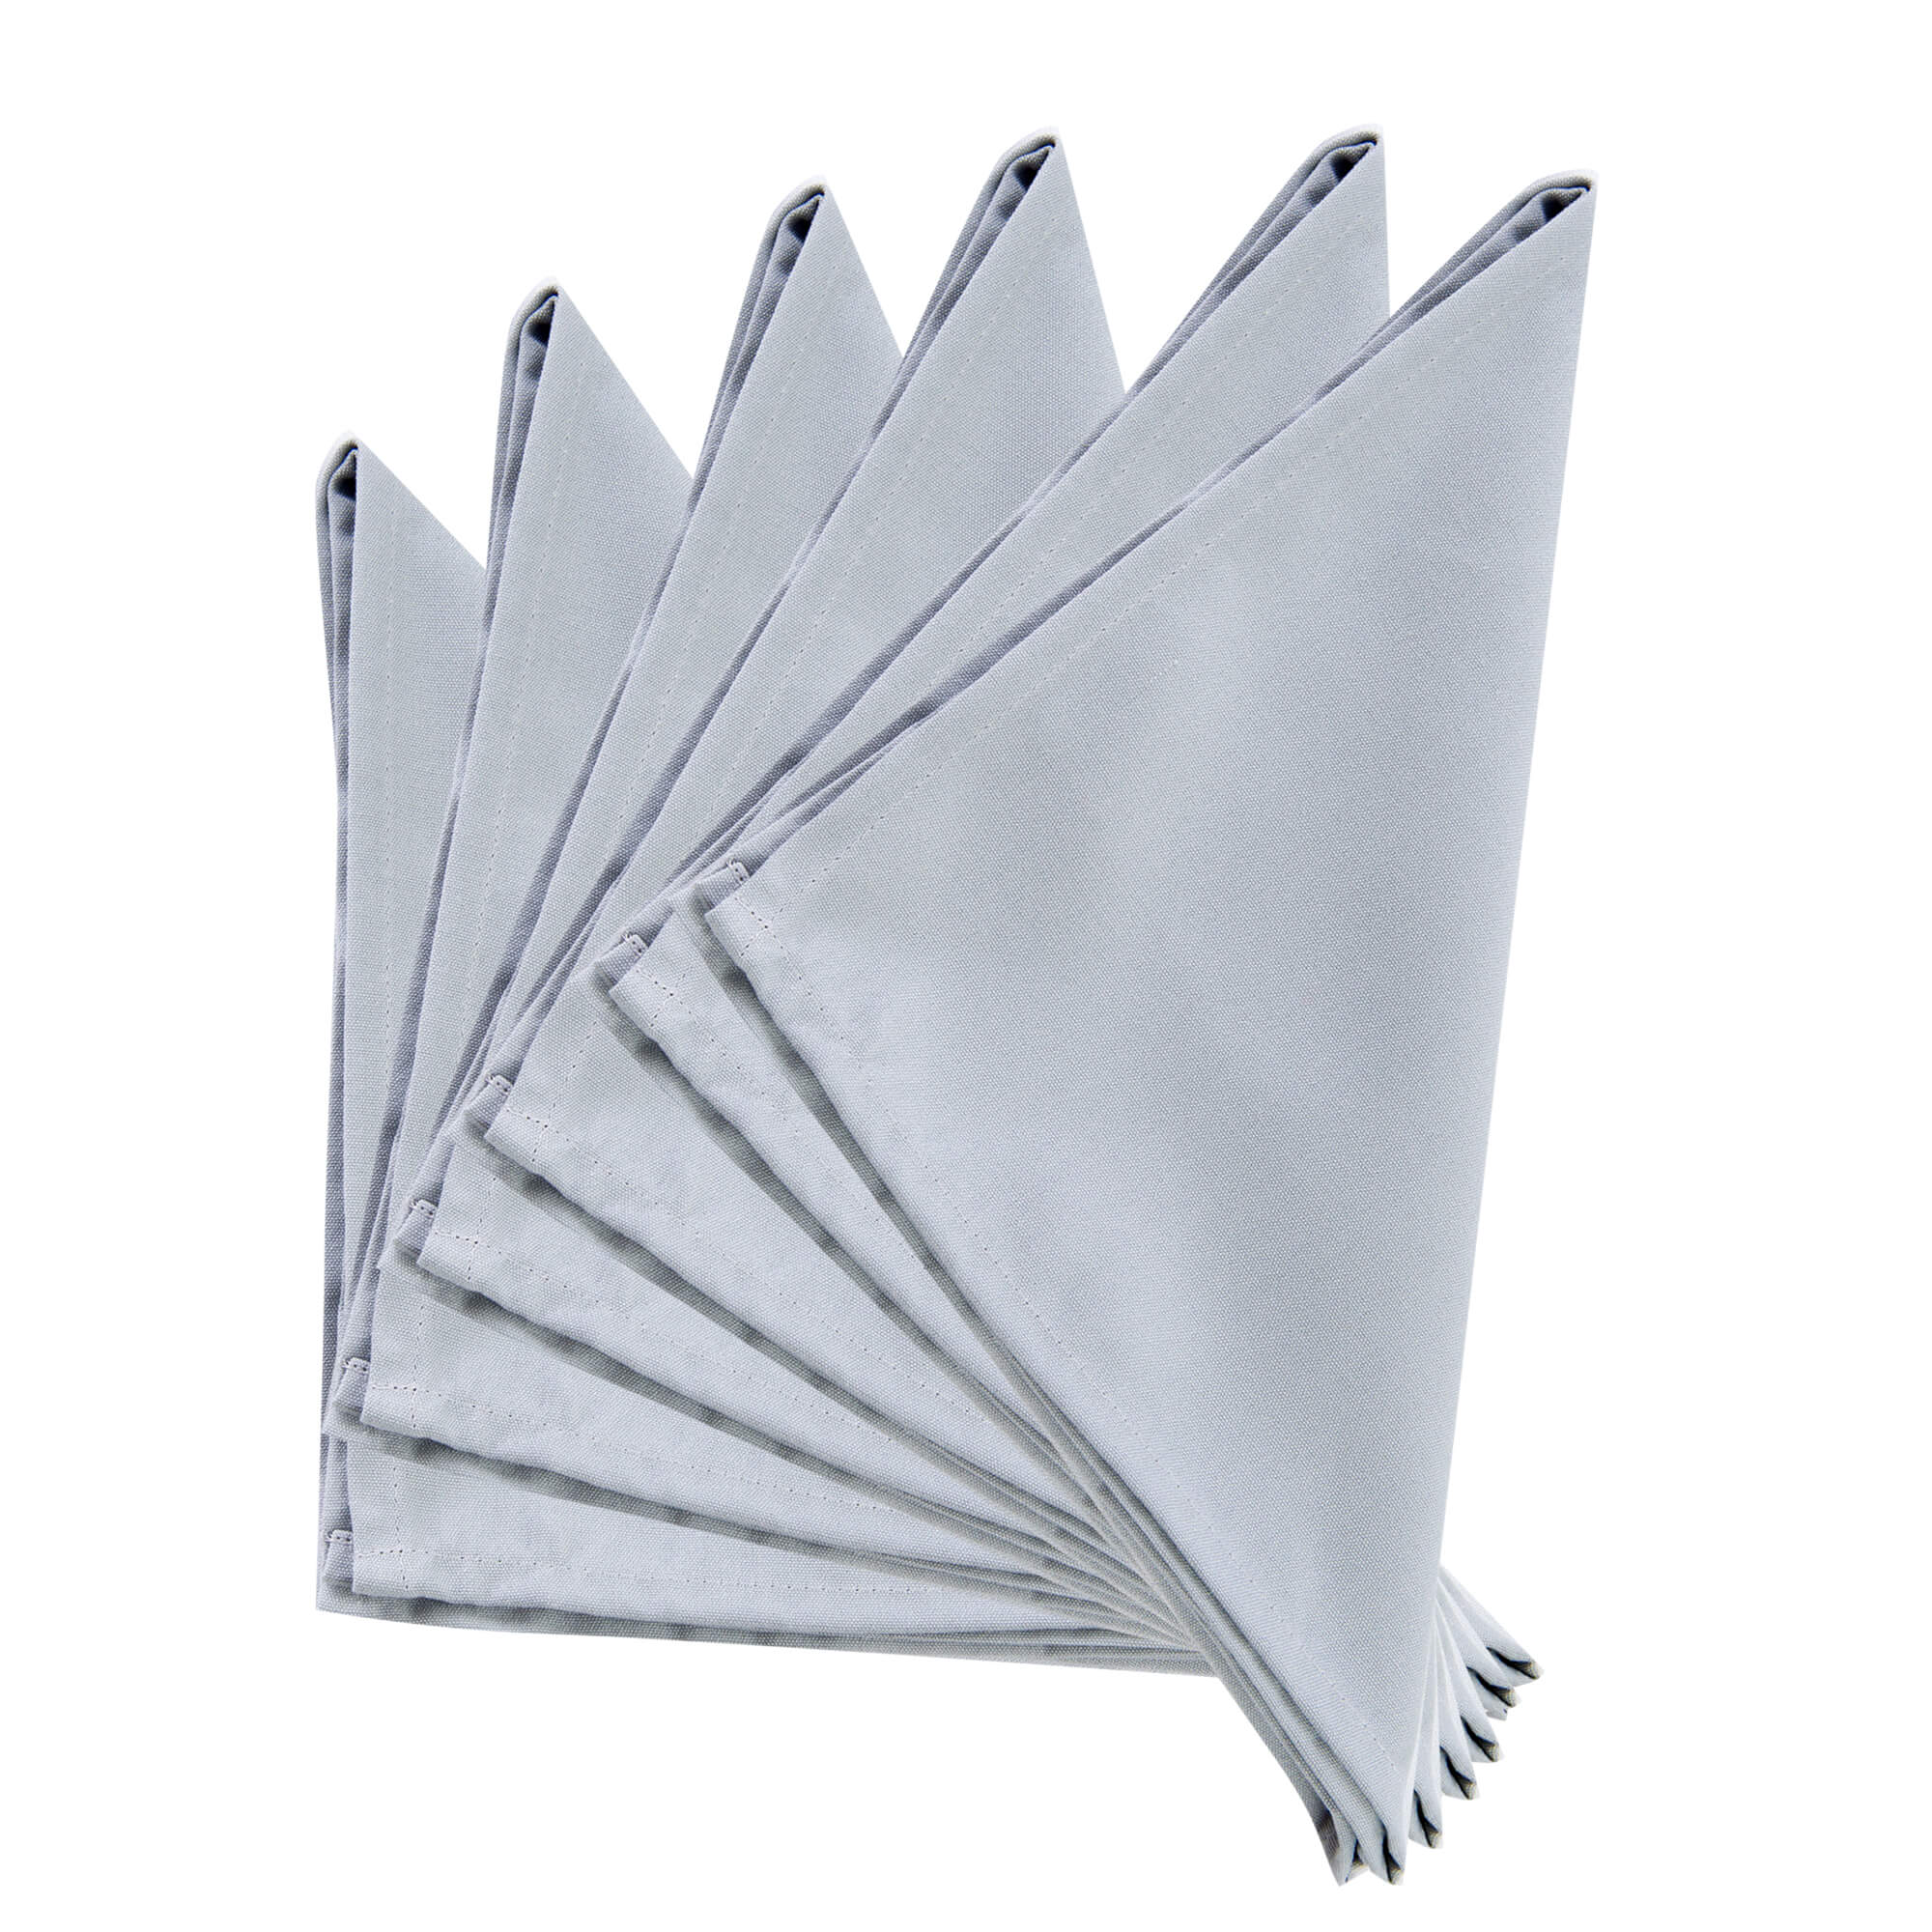 Plain IT Grey Thick Spun Polyester Dinner Cloth Table Napkins/Fabric Serviette 51x51cm. Pack of 2,4 or 6 (Grey)